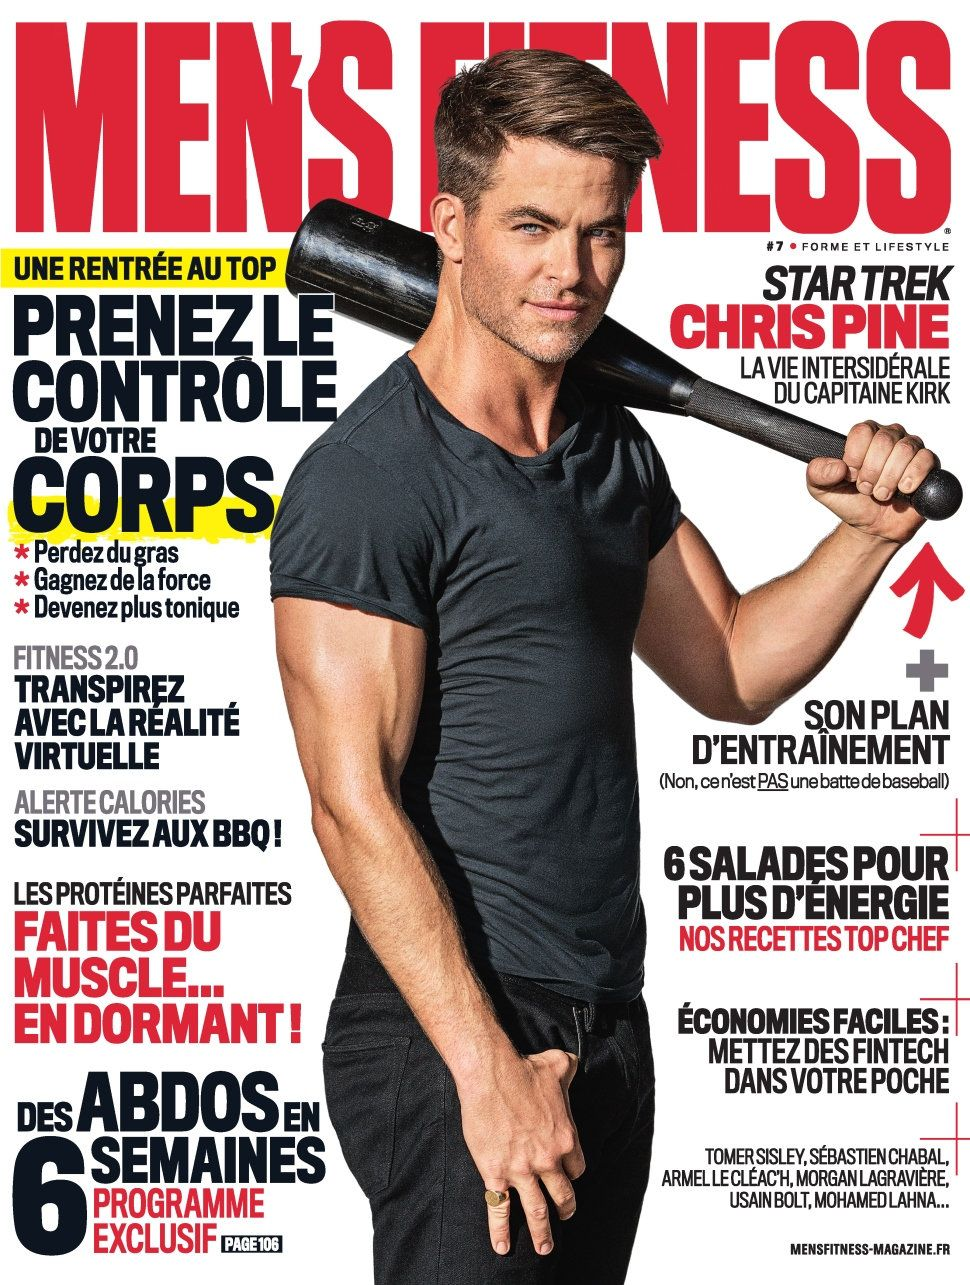 Men's Fitness 7 - Septembre 2016